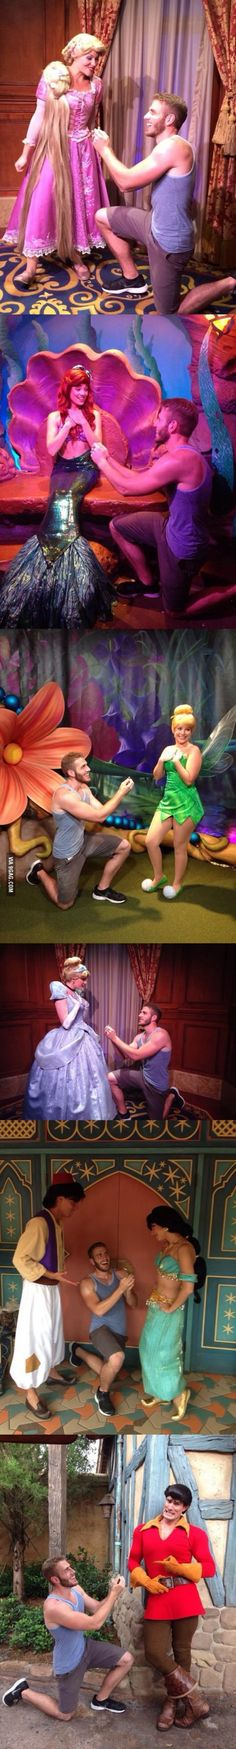 Guy proposes to various Disney characters at Disney World